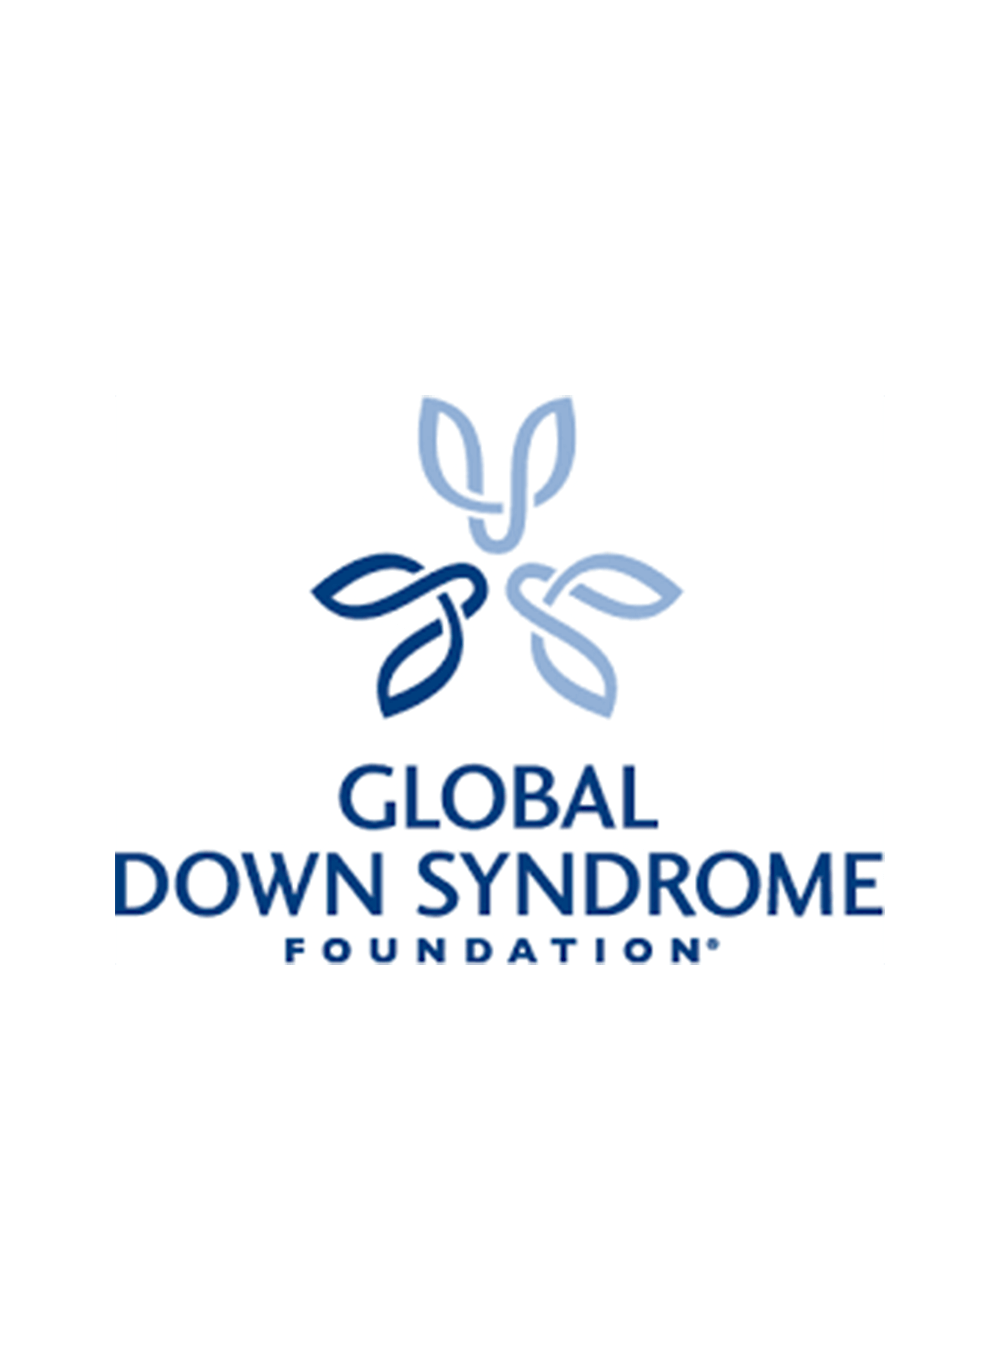 global down syndrome investment banking support